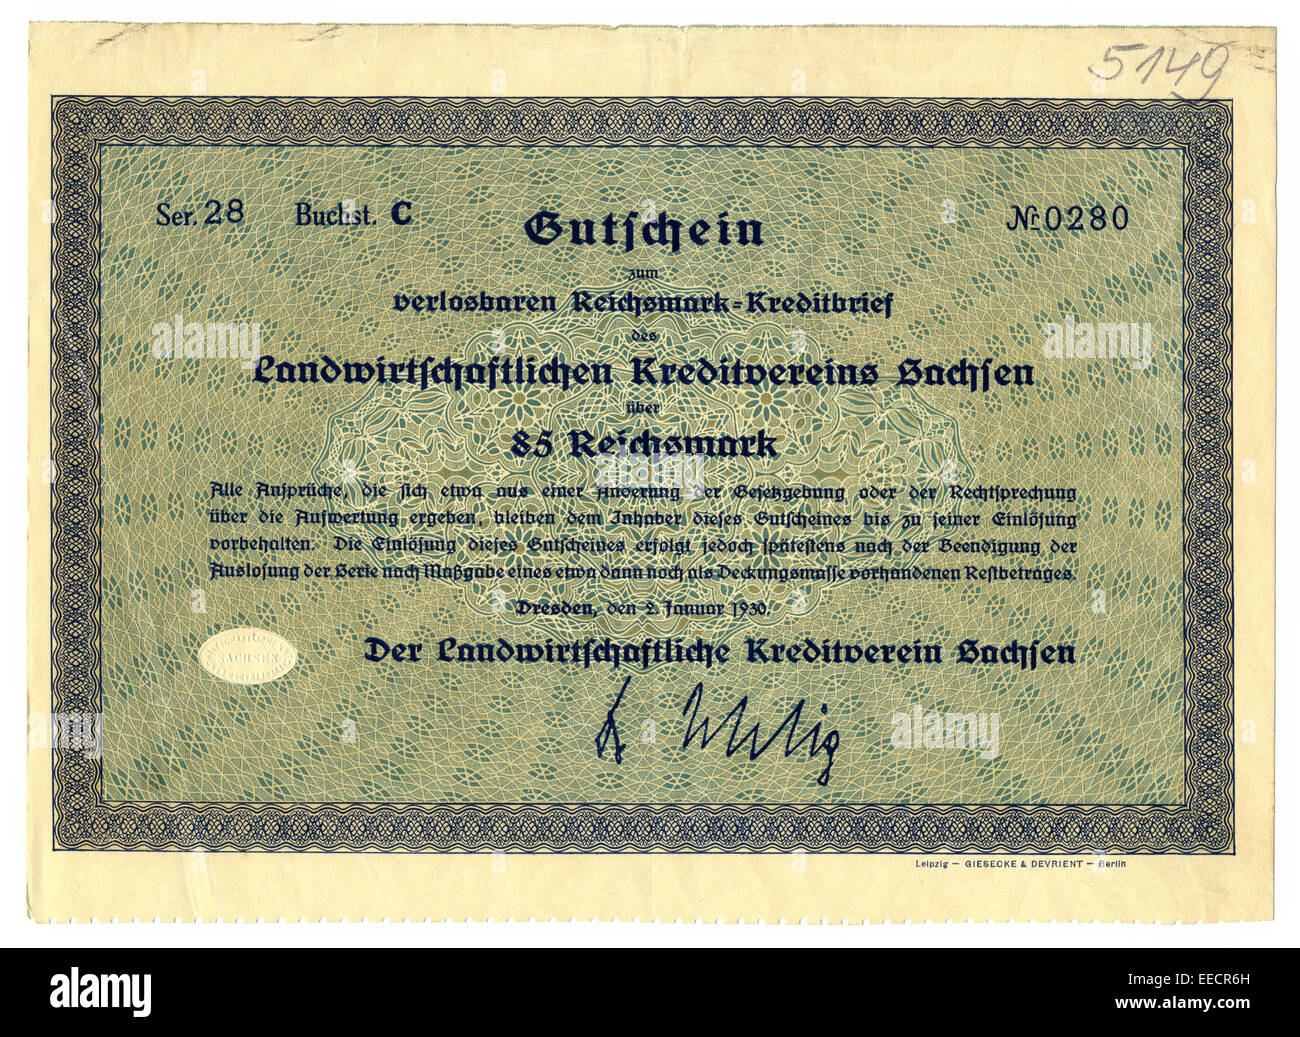 Historic share certificate, Old voucher, front, 85 Reichsmark, Saxony, Germany, 1930, - Stock Image